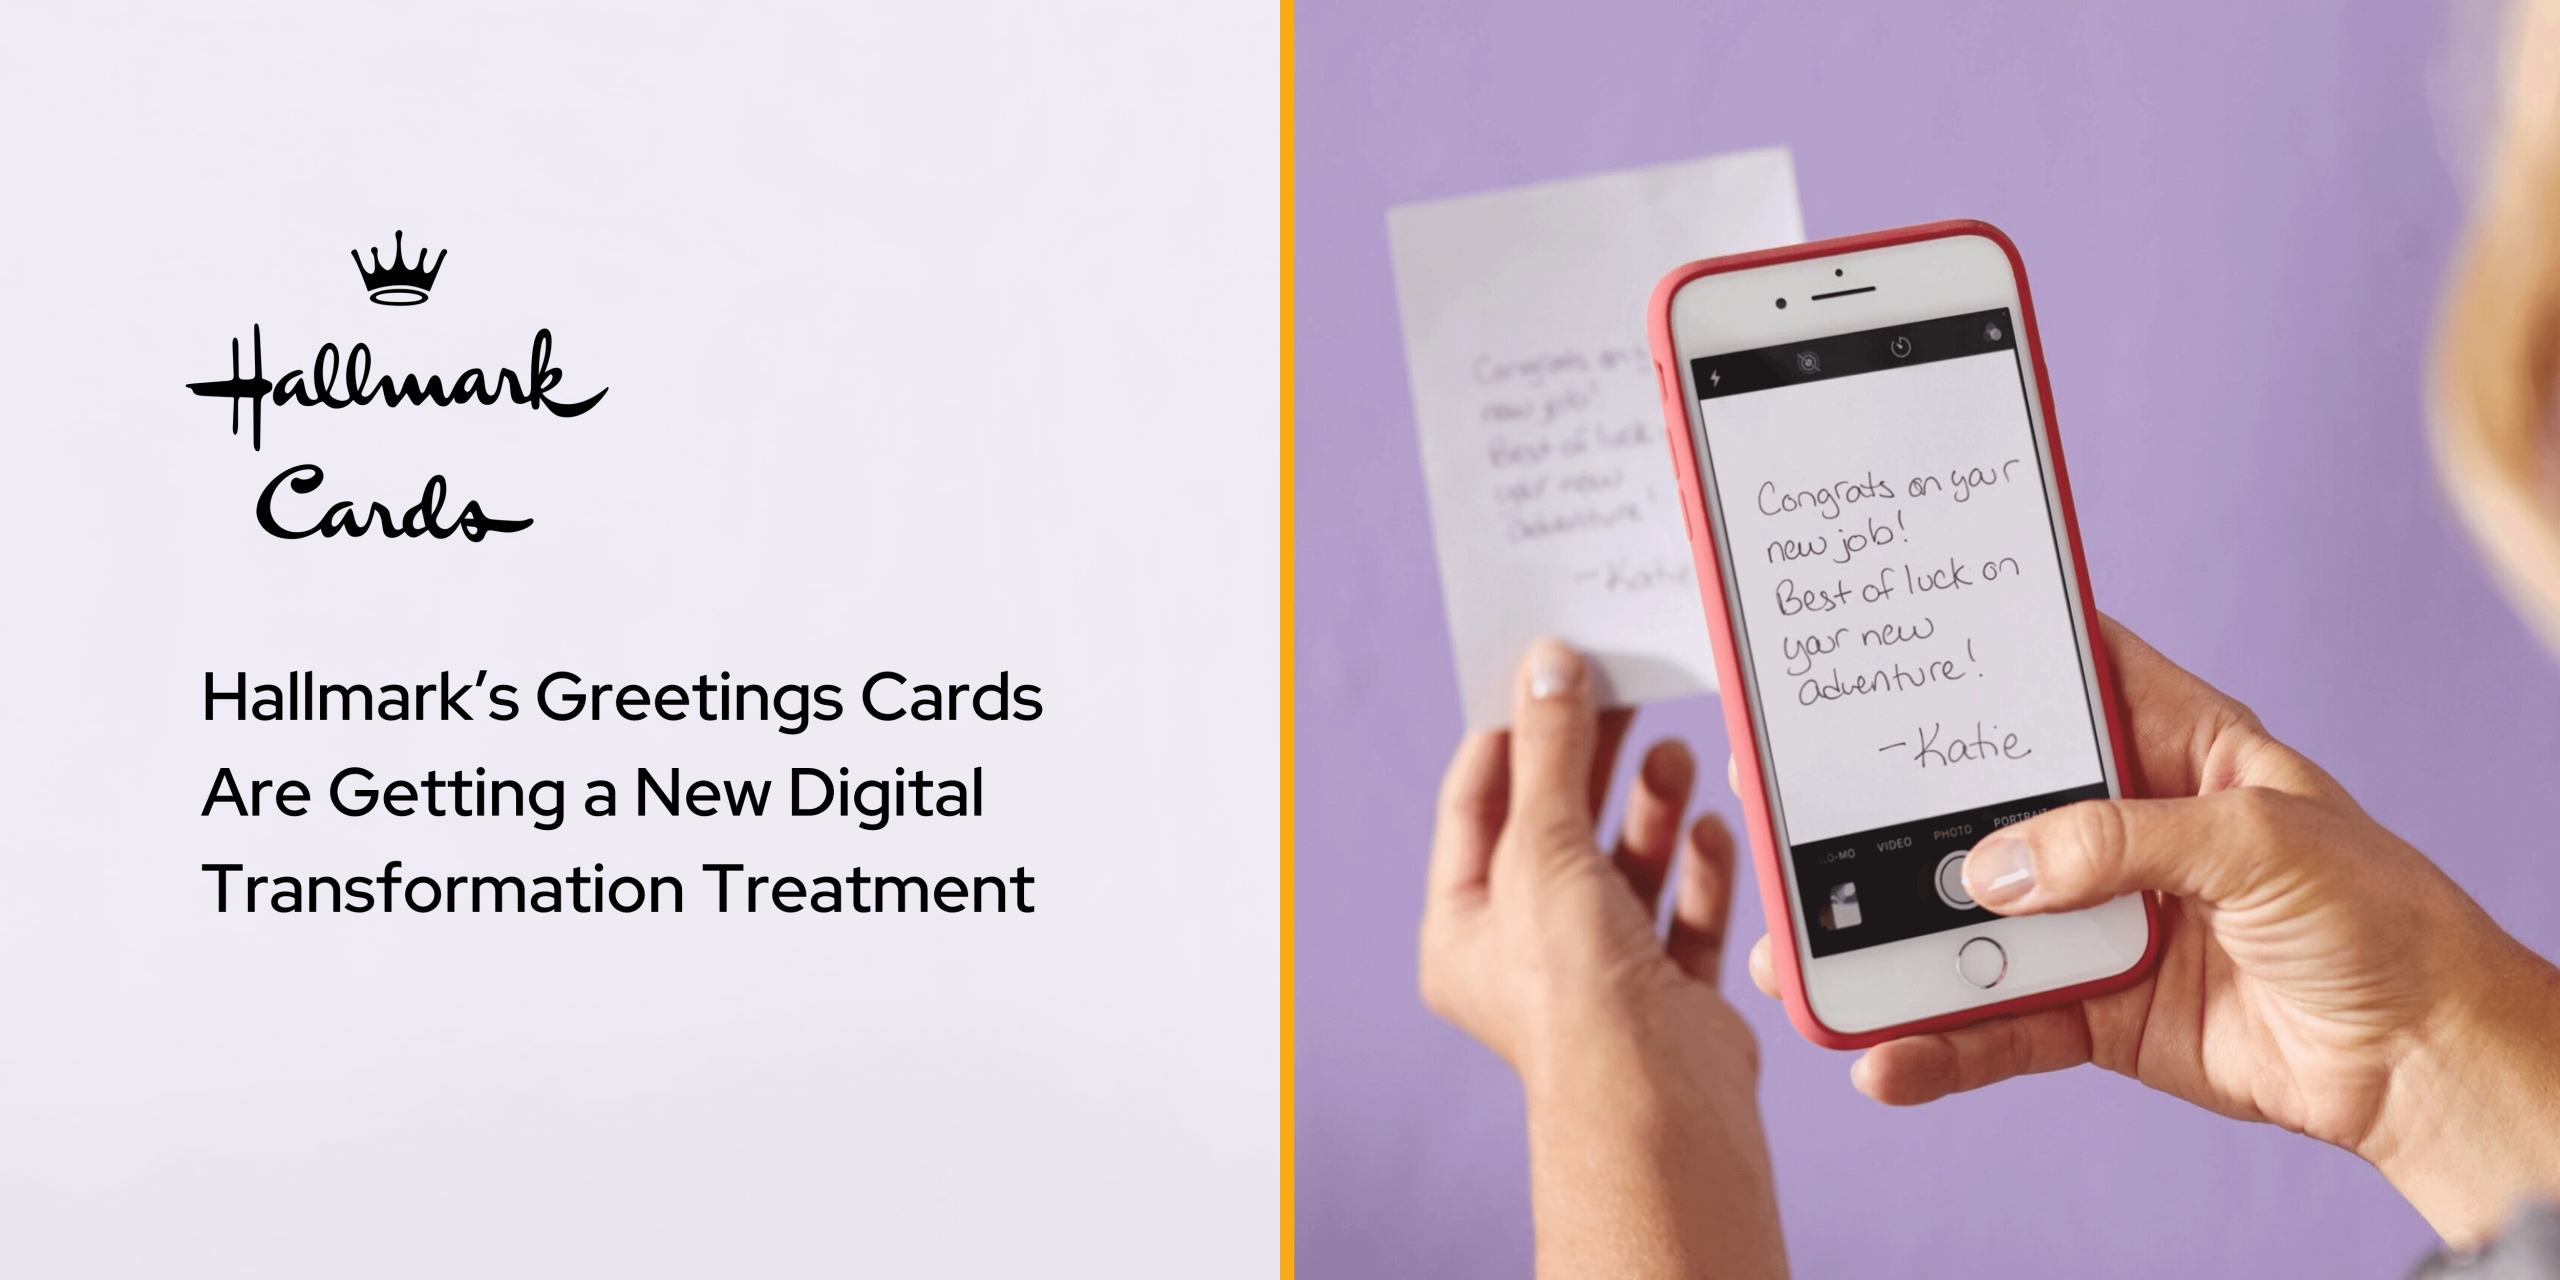 Hallmark's Greetings Cards Are Getting a New Digital Transformation Treatment